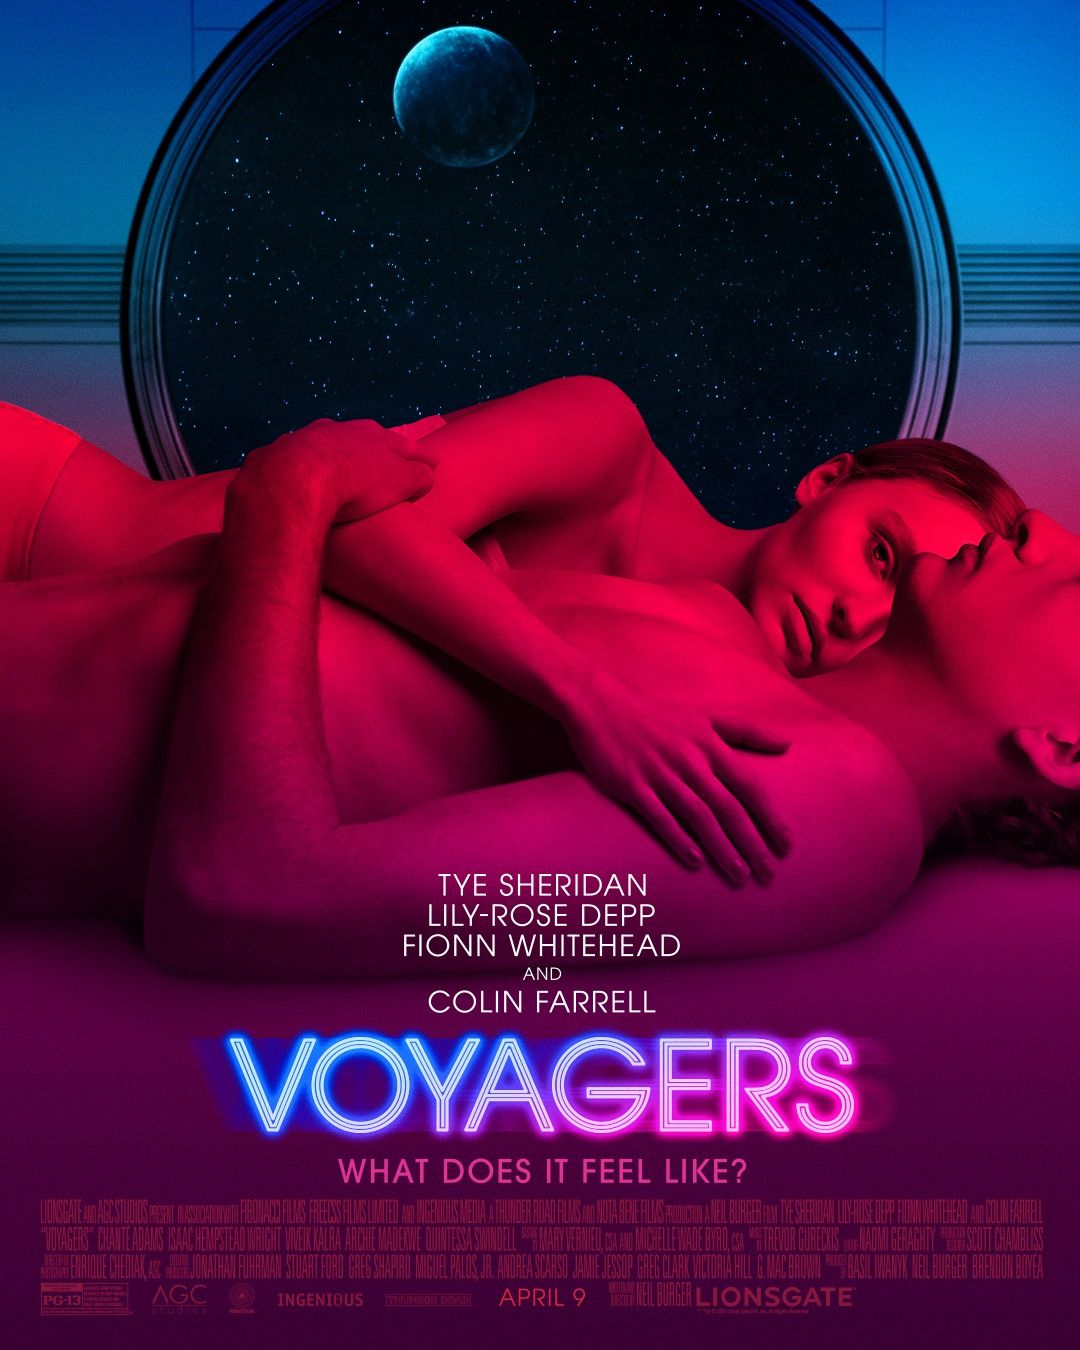 Voyagers Movie 2021 Tye Sheridan Lily Rose Depp In 2021 Voyage Lily Rose Depp The Illusionist